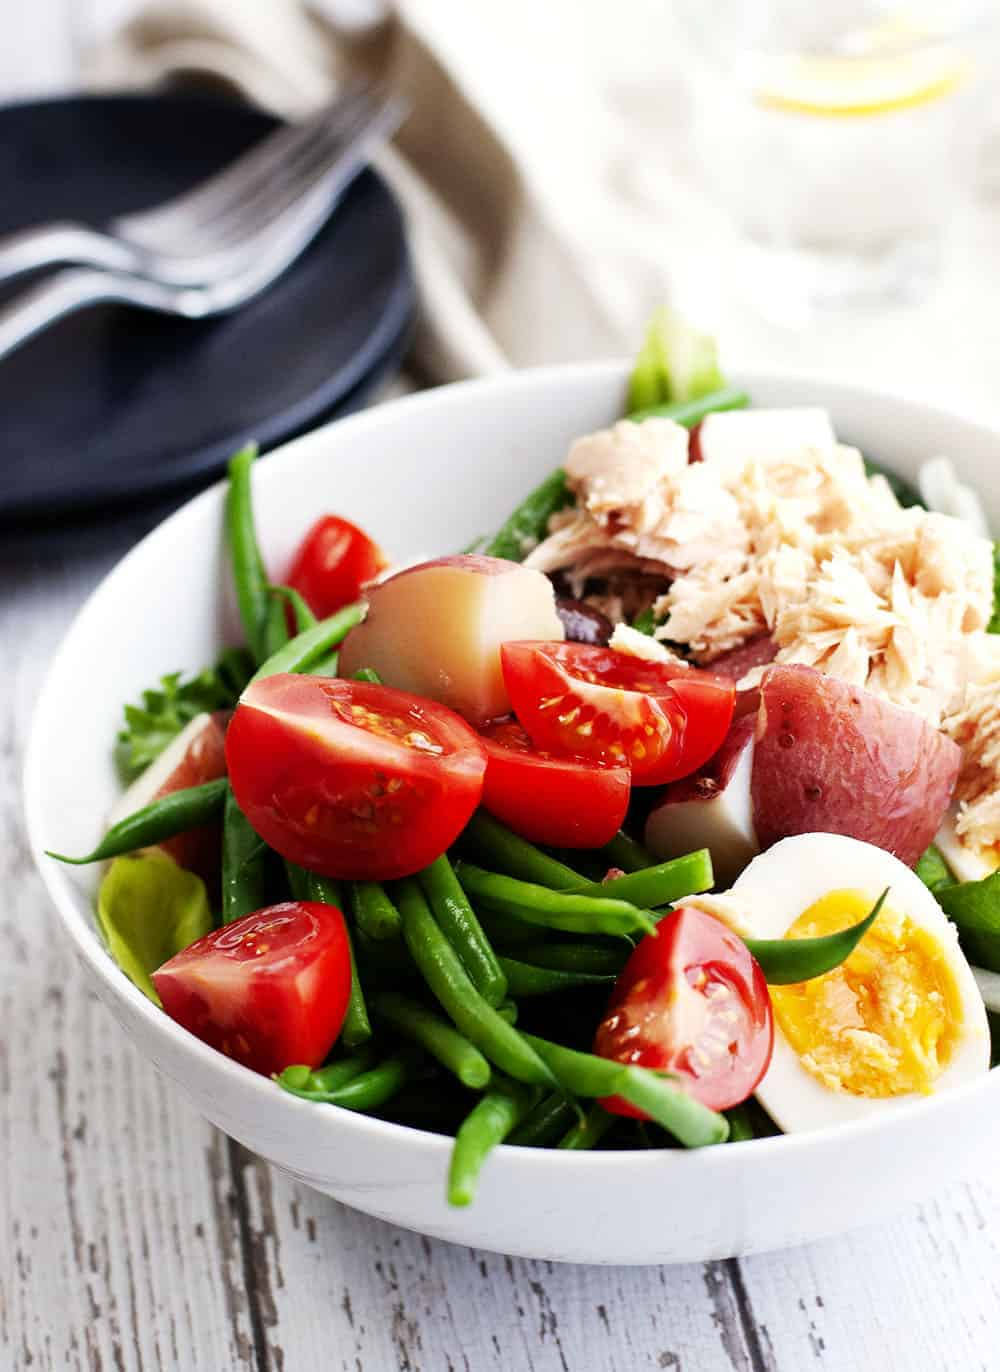 Nicoise Salad served in a white bowl